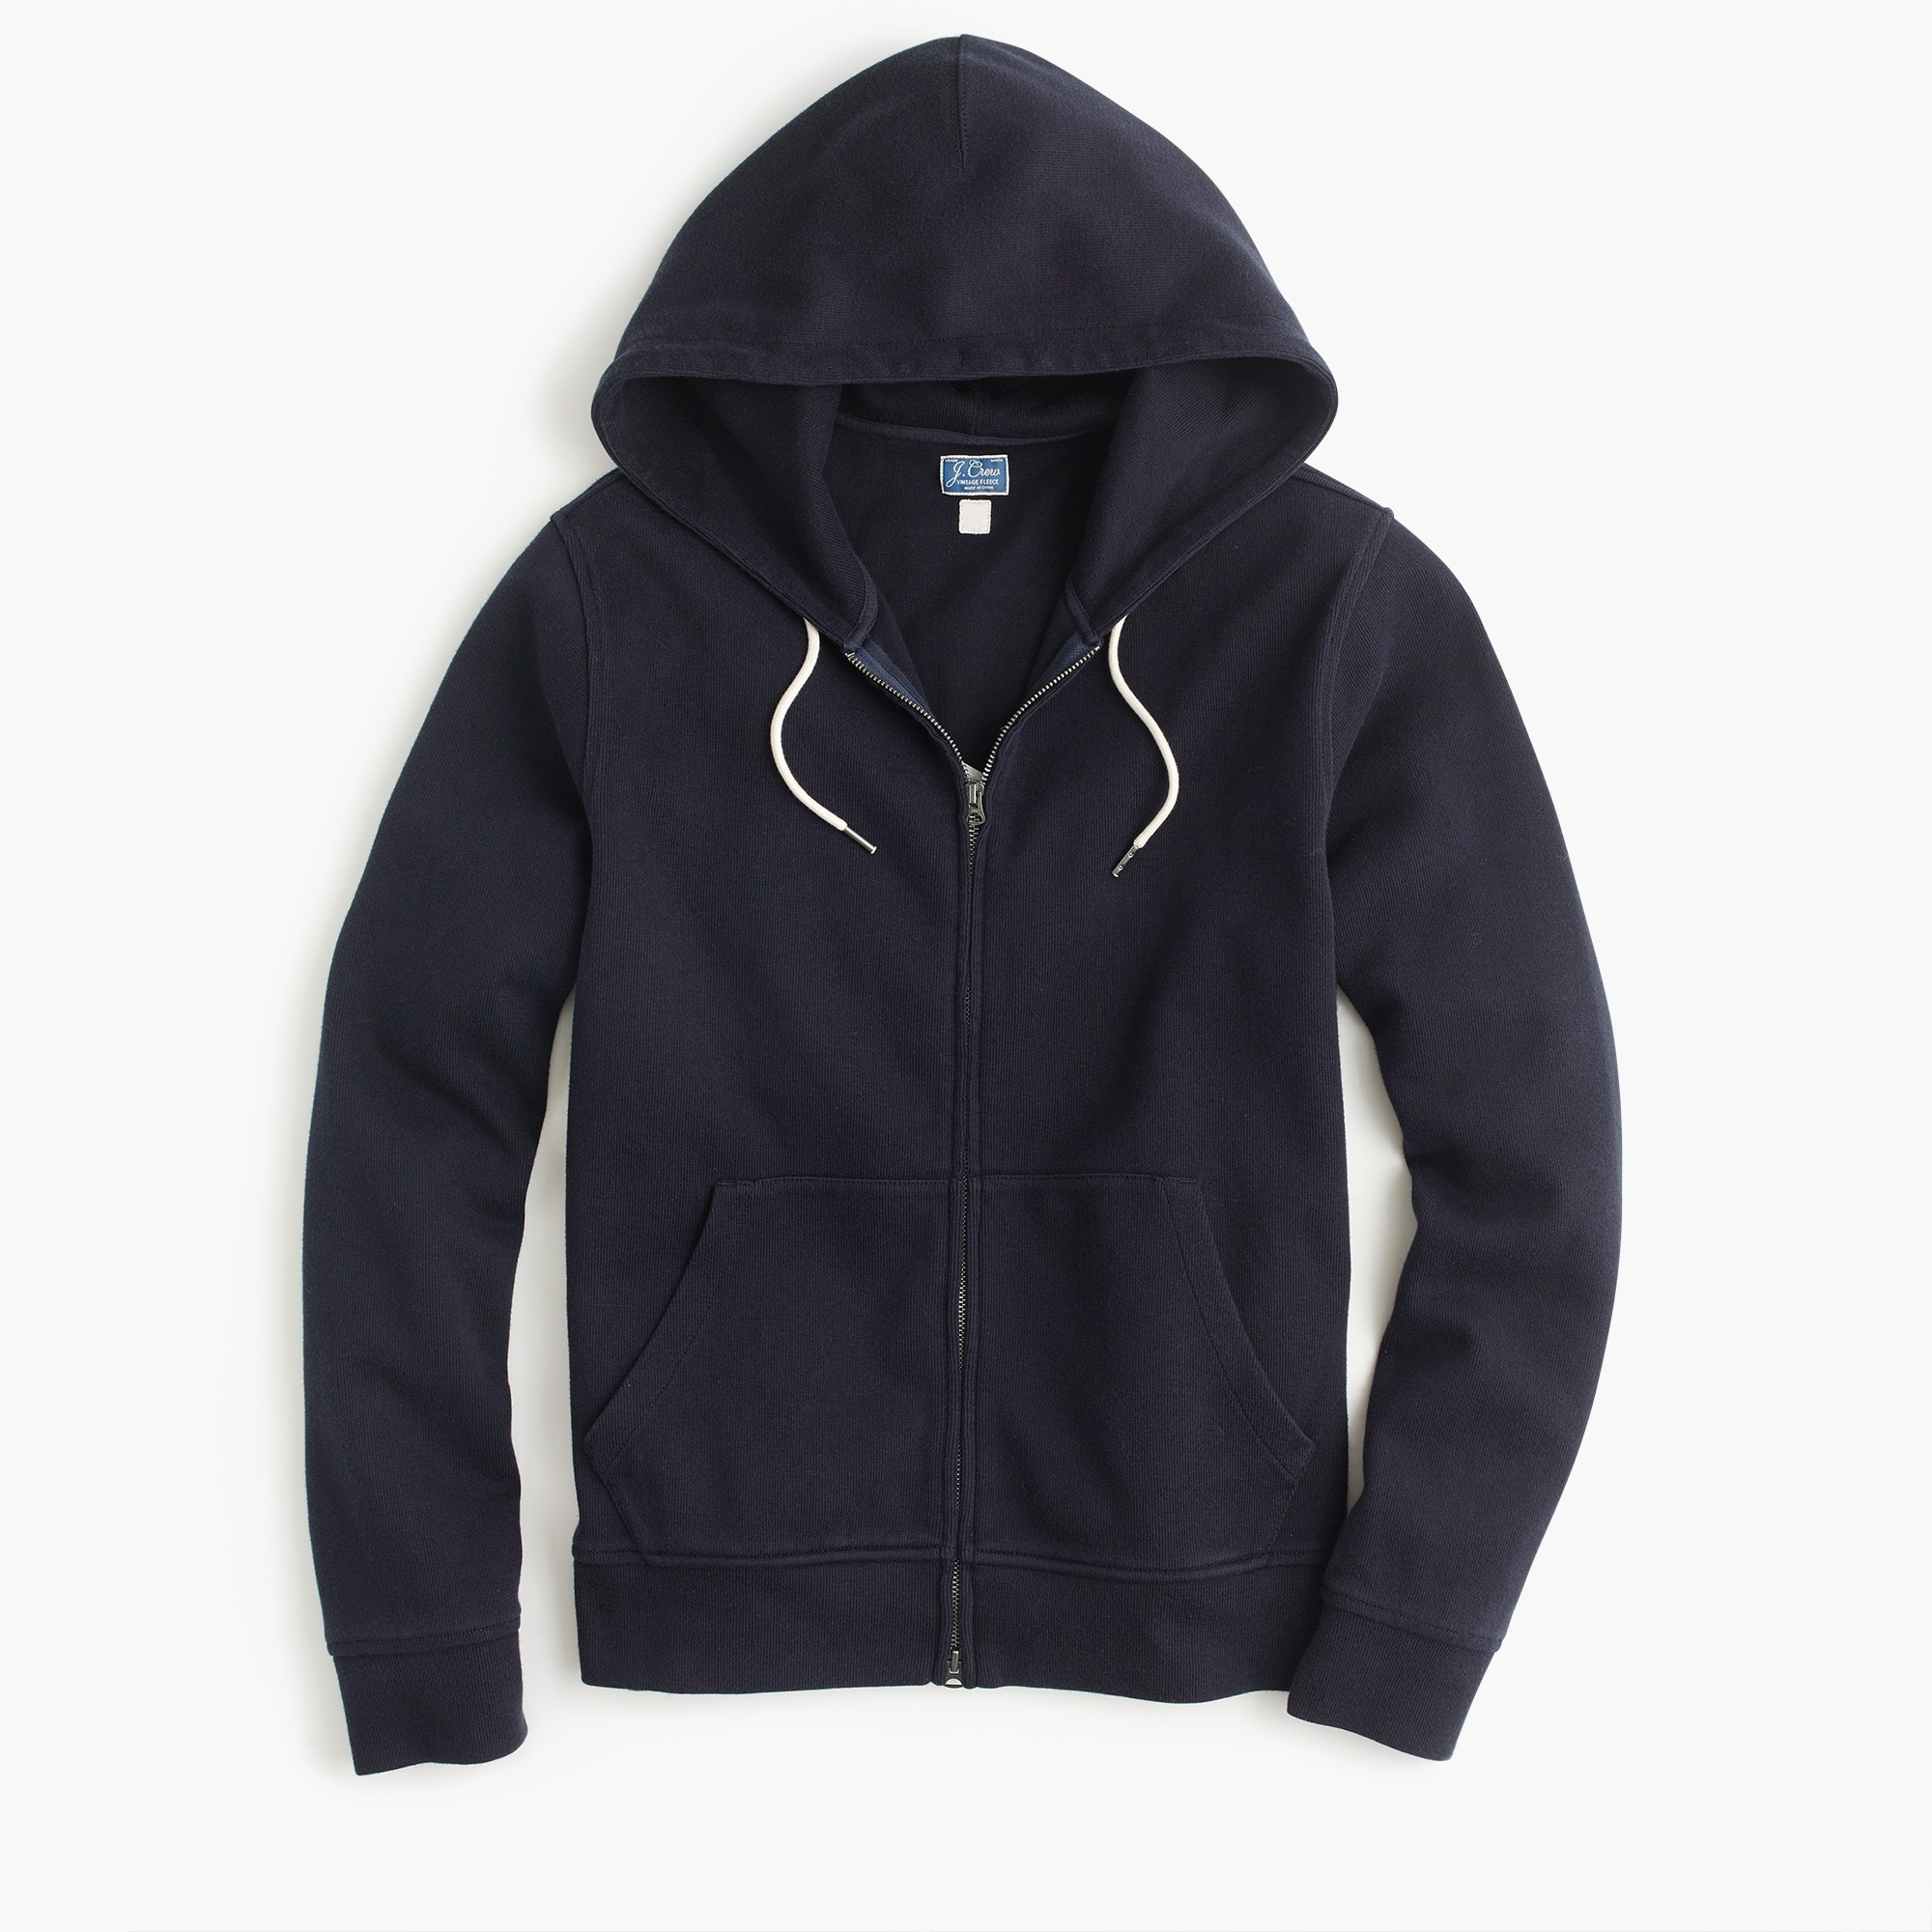 French rib full-zip hoodie